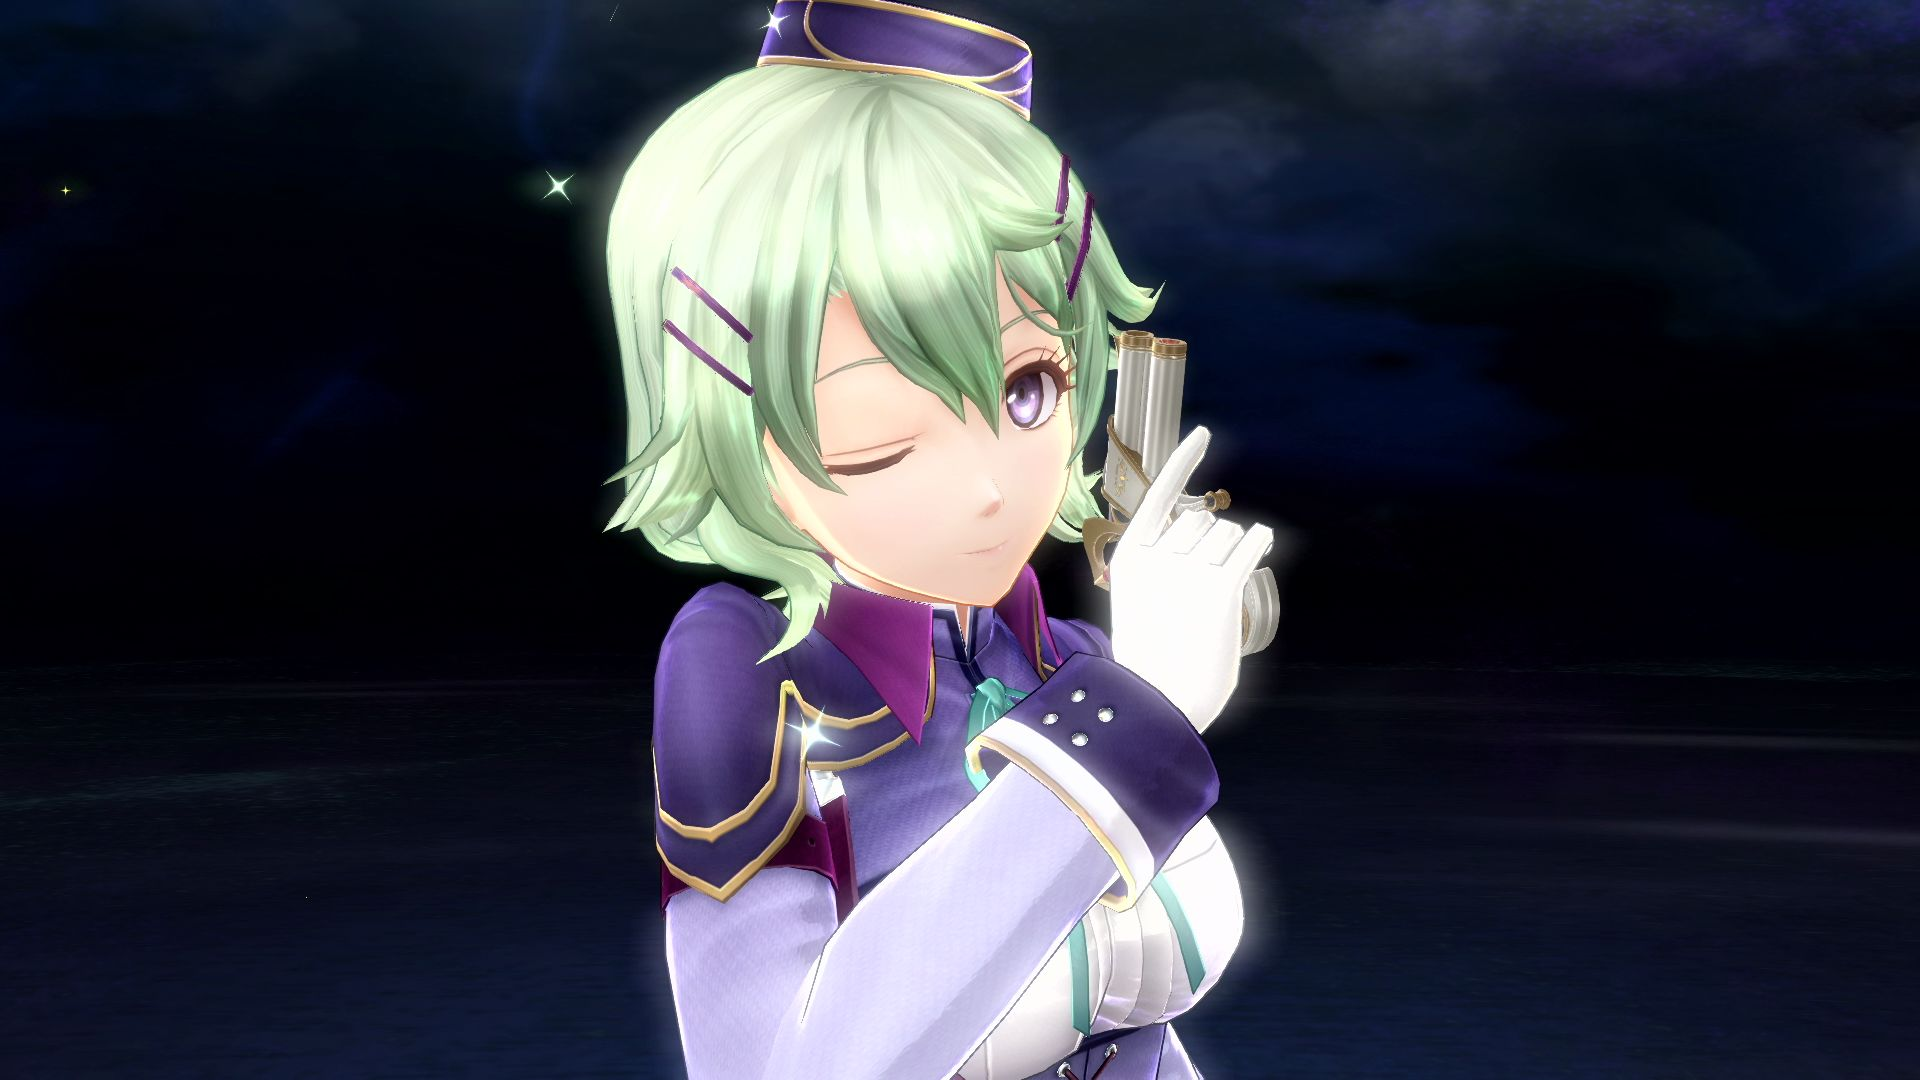 A knowing wink from Musse Egret in Trails of Cold Steel IV.